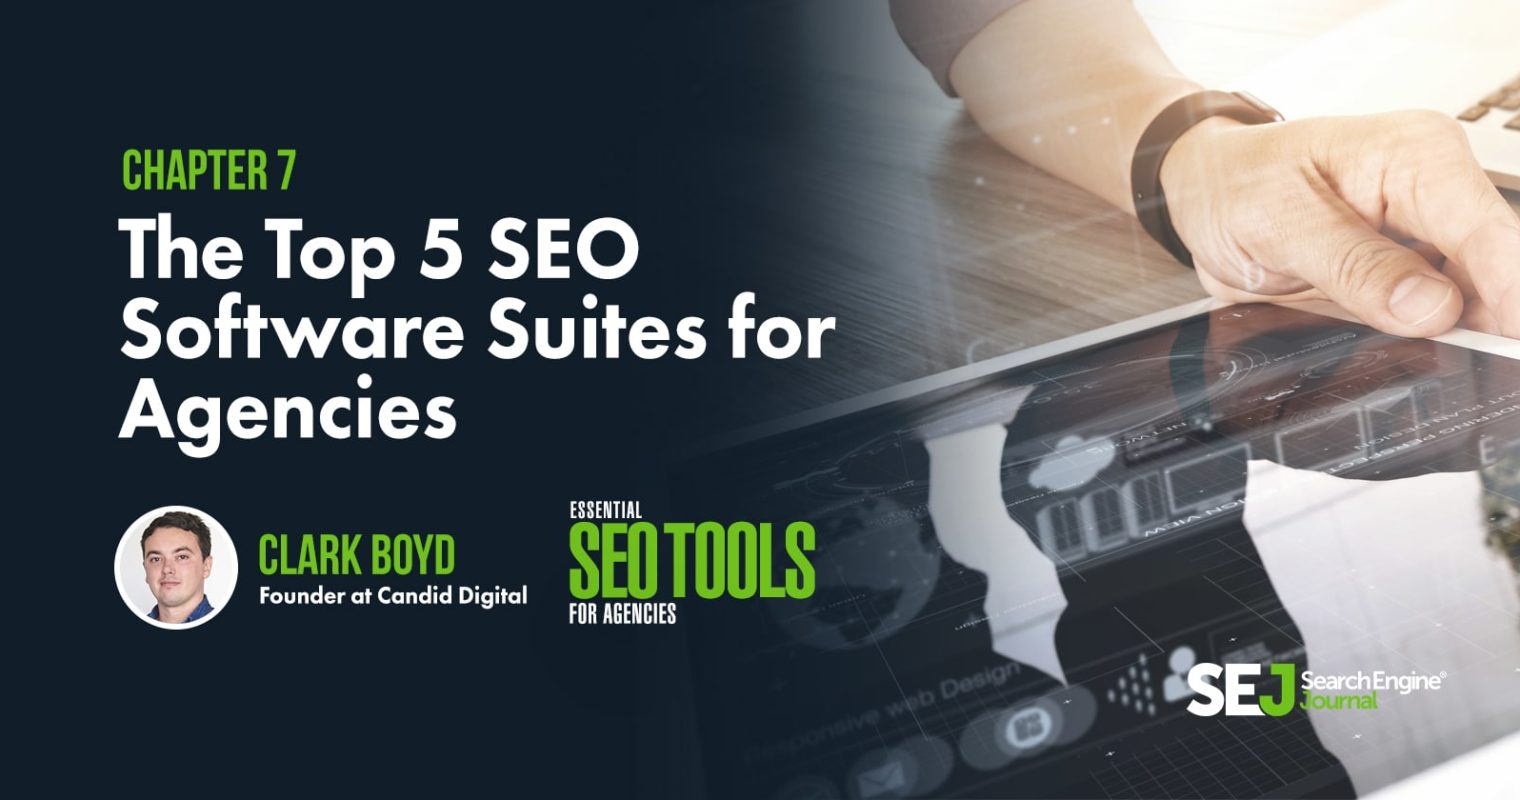 The Top 5 SEO Software Suites for Agencies